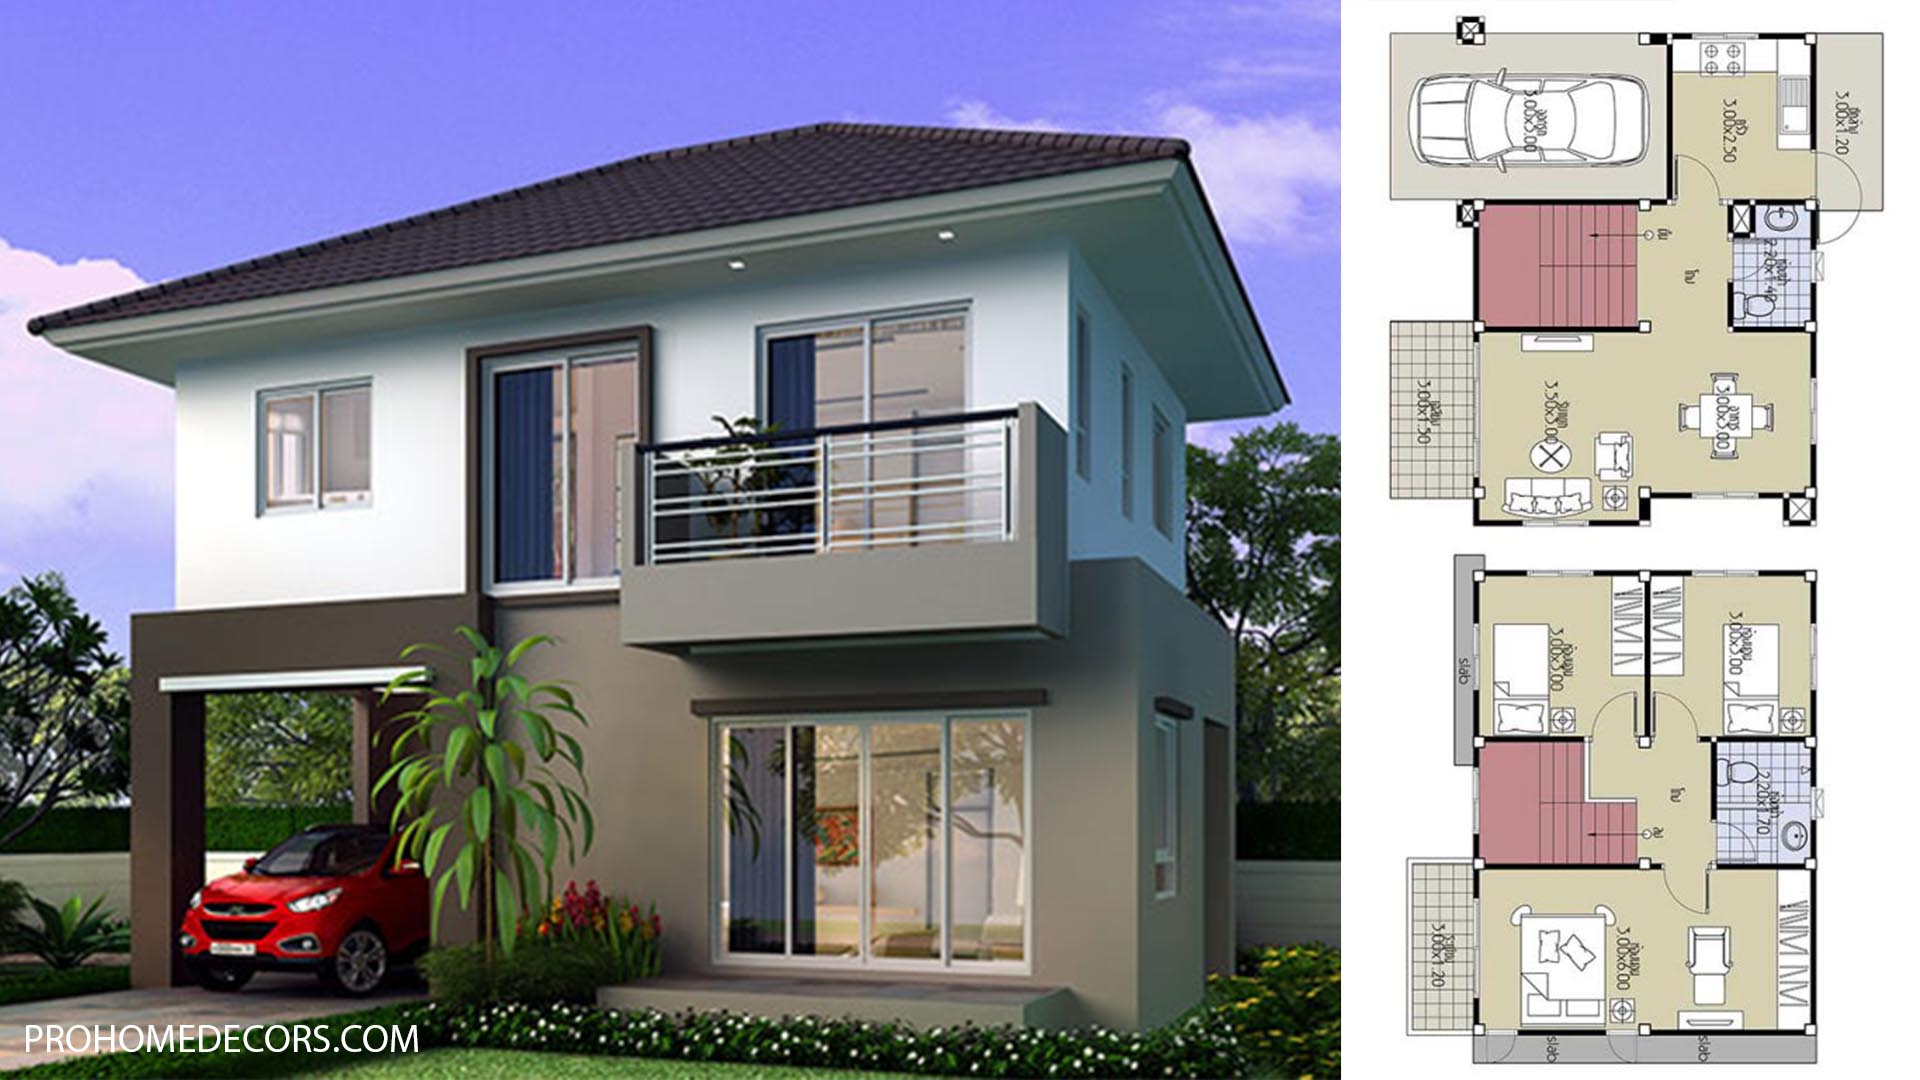 House Plans 8.2×6 with 3 Beds